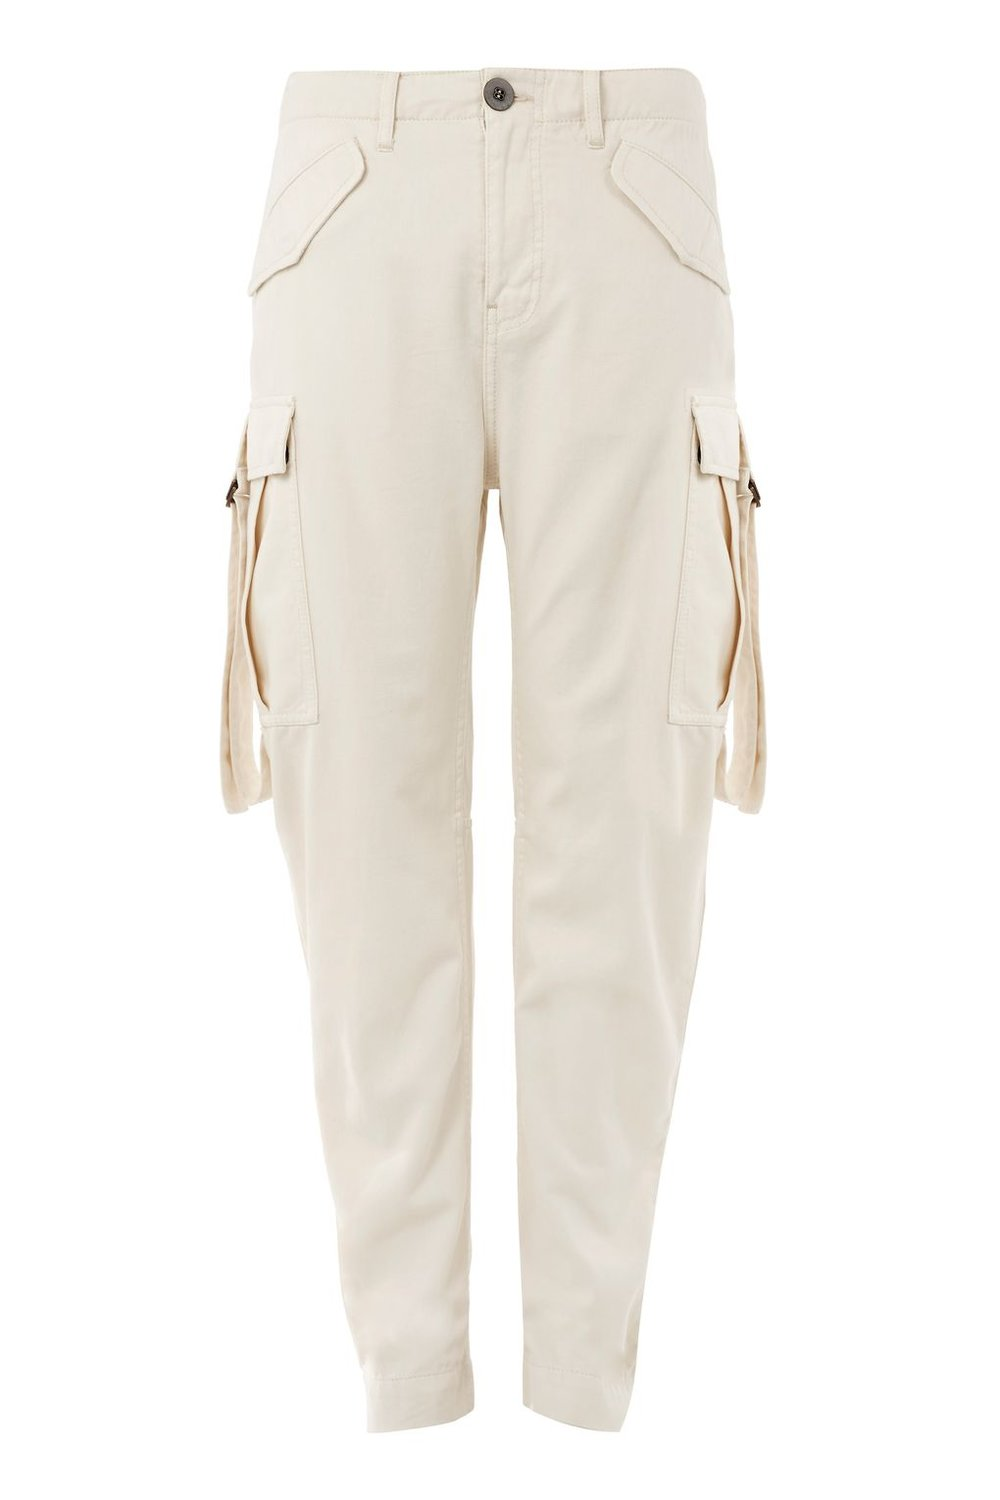 TopshopUNique pants.jpg